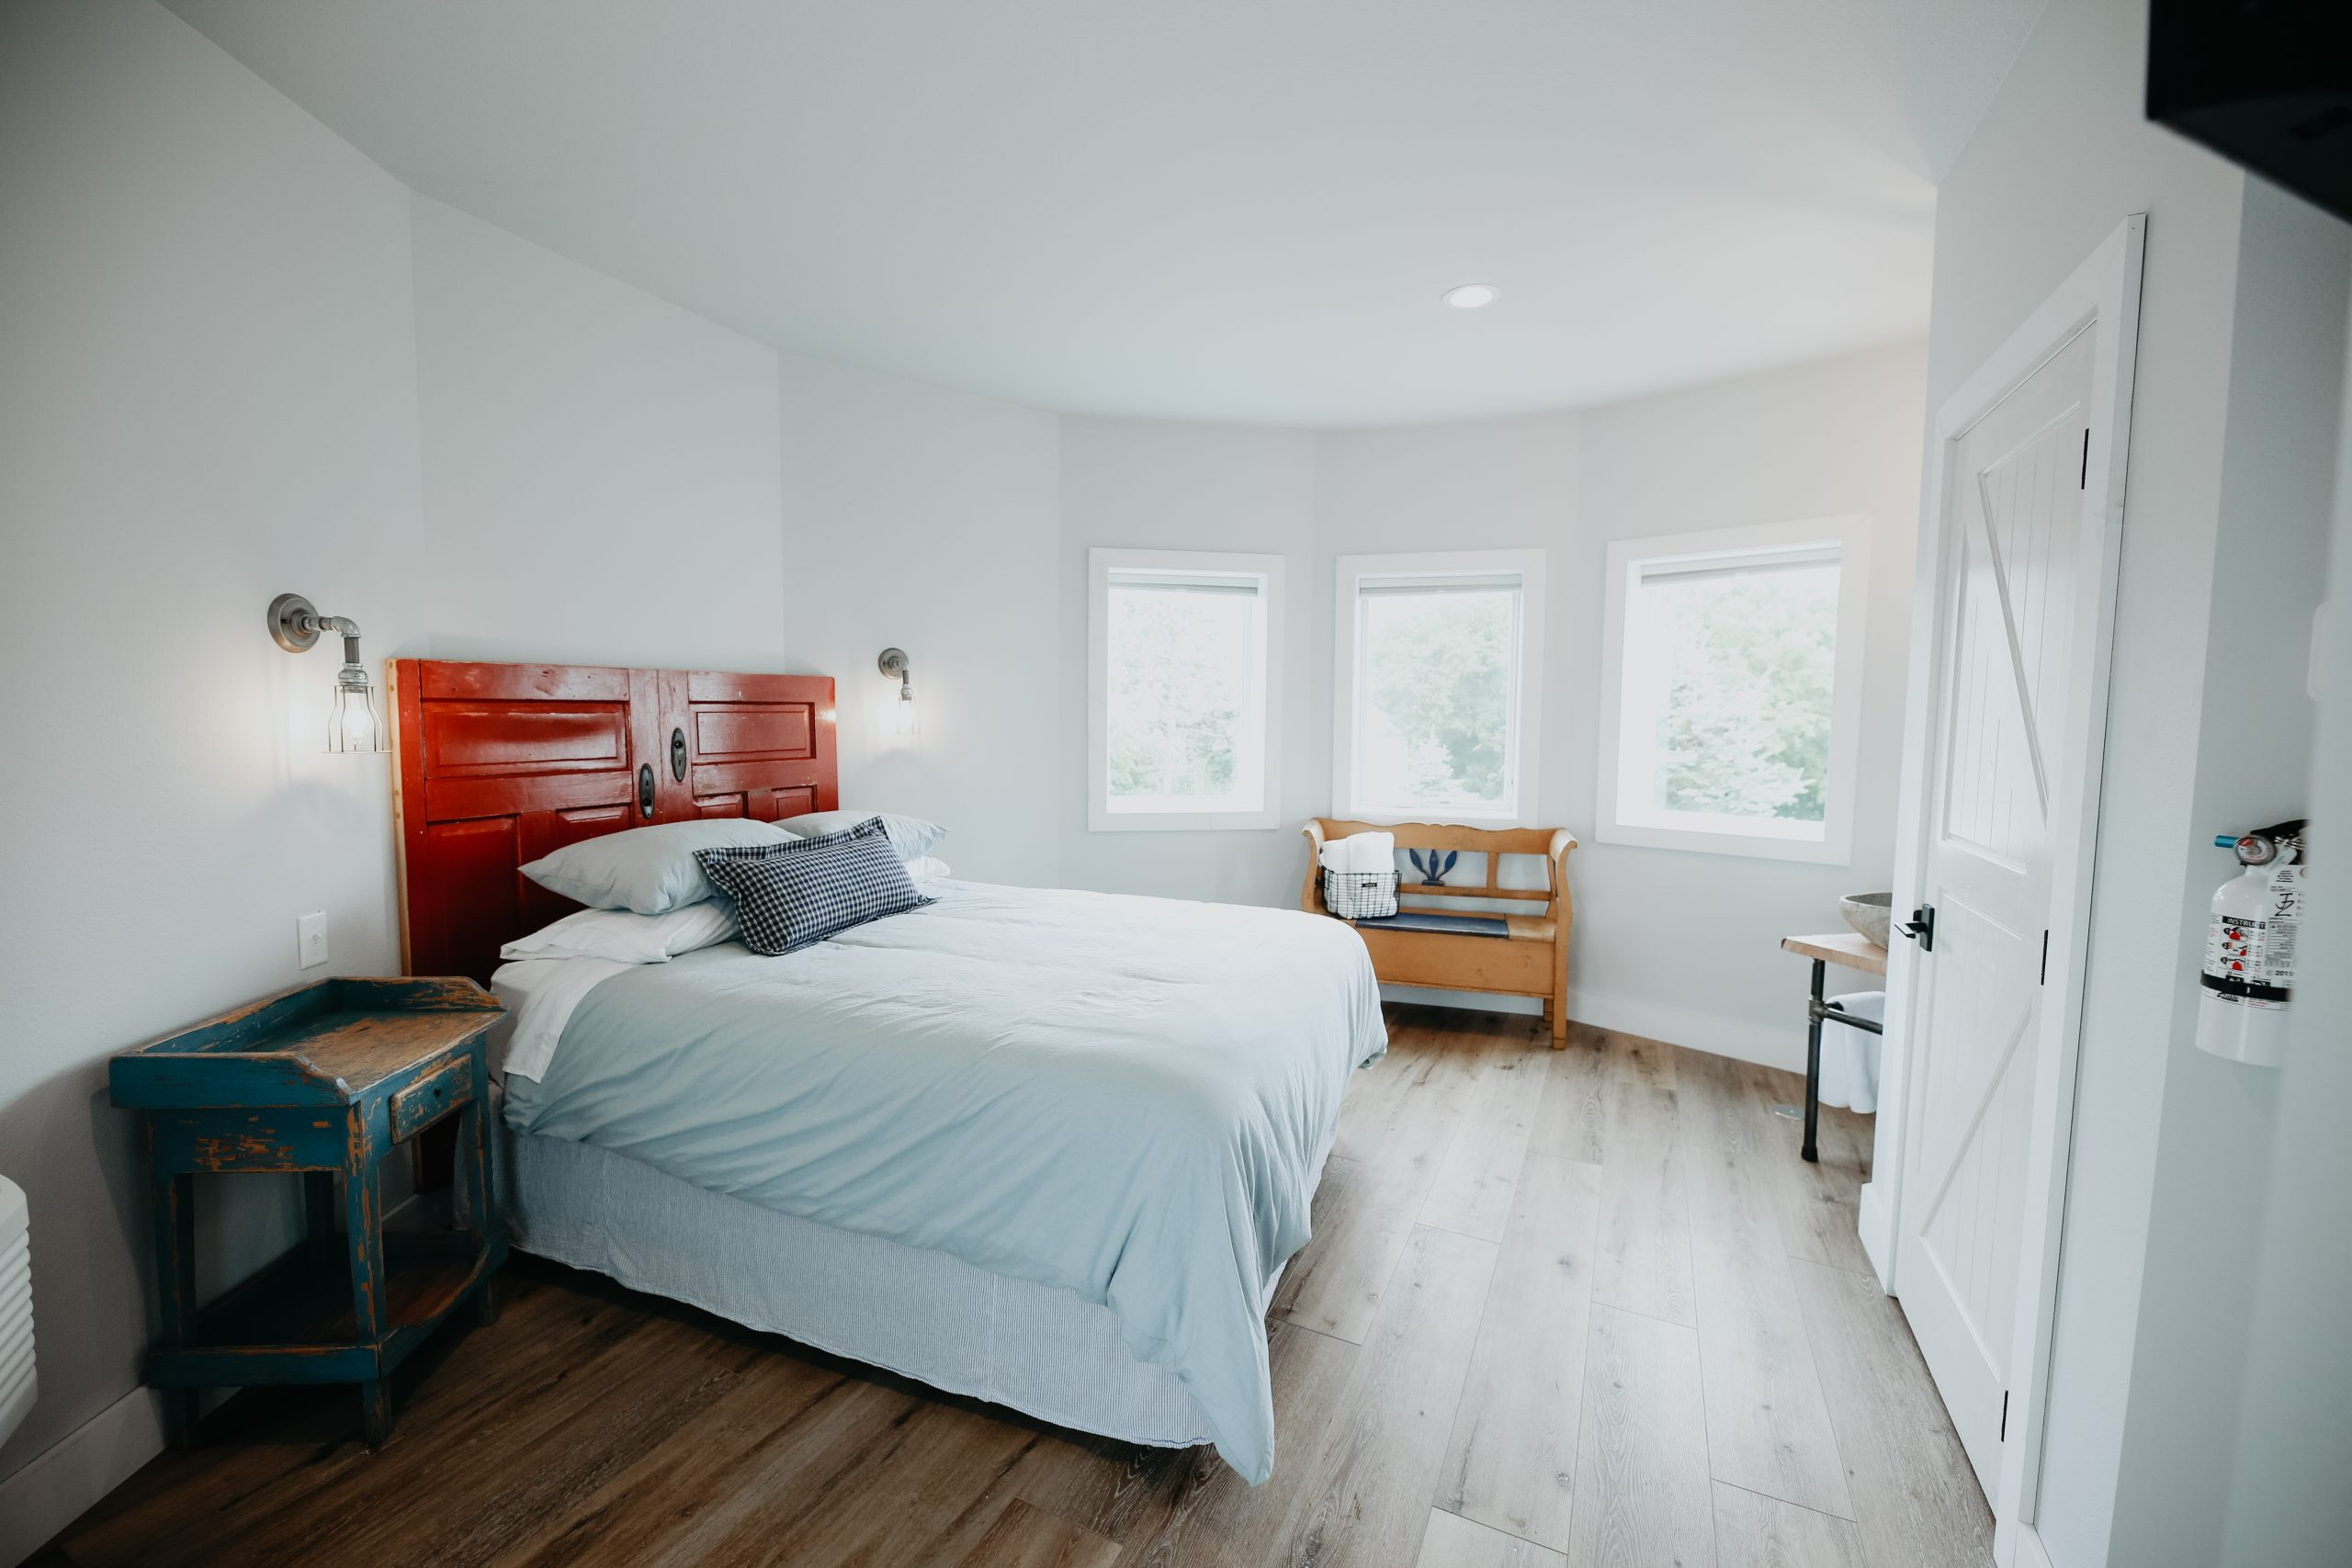 Another example of a bedroom...